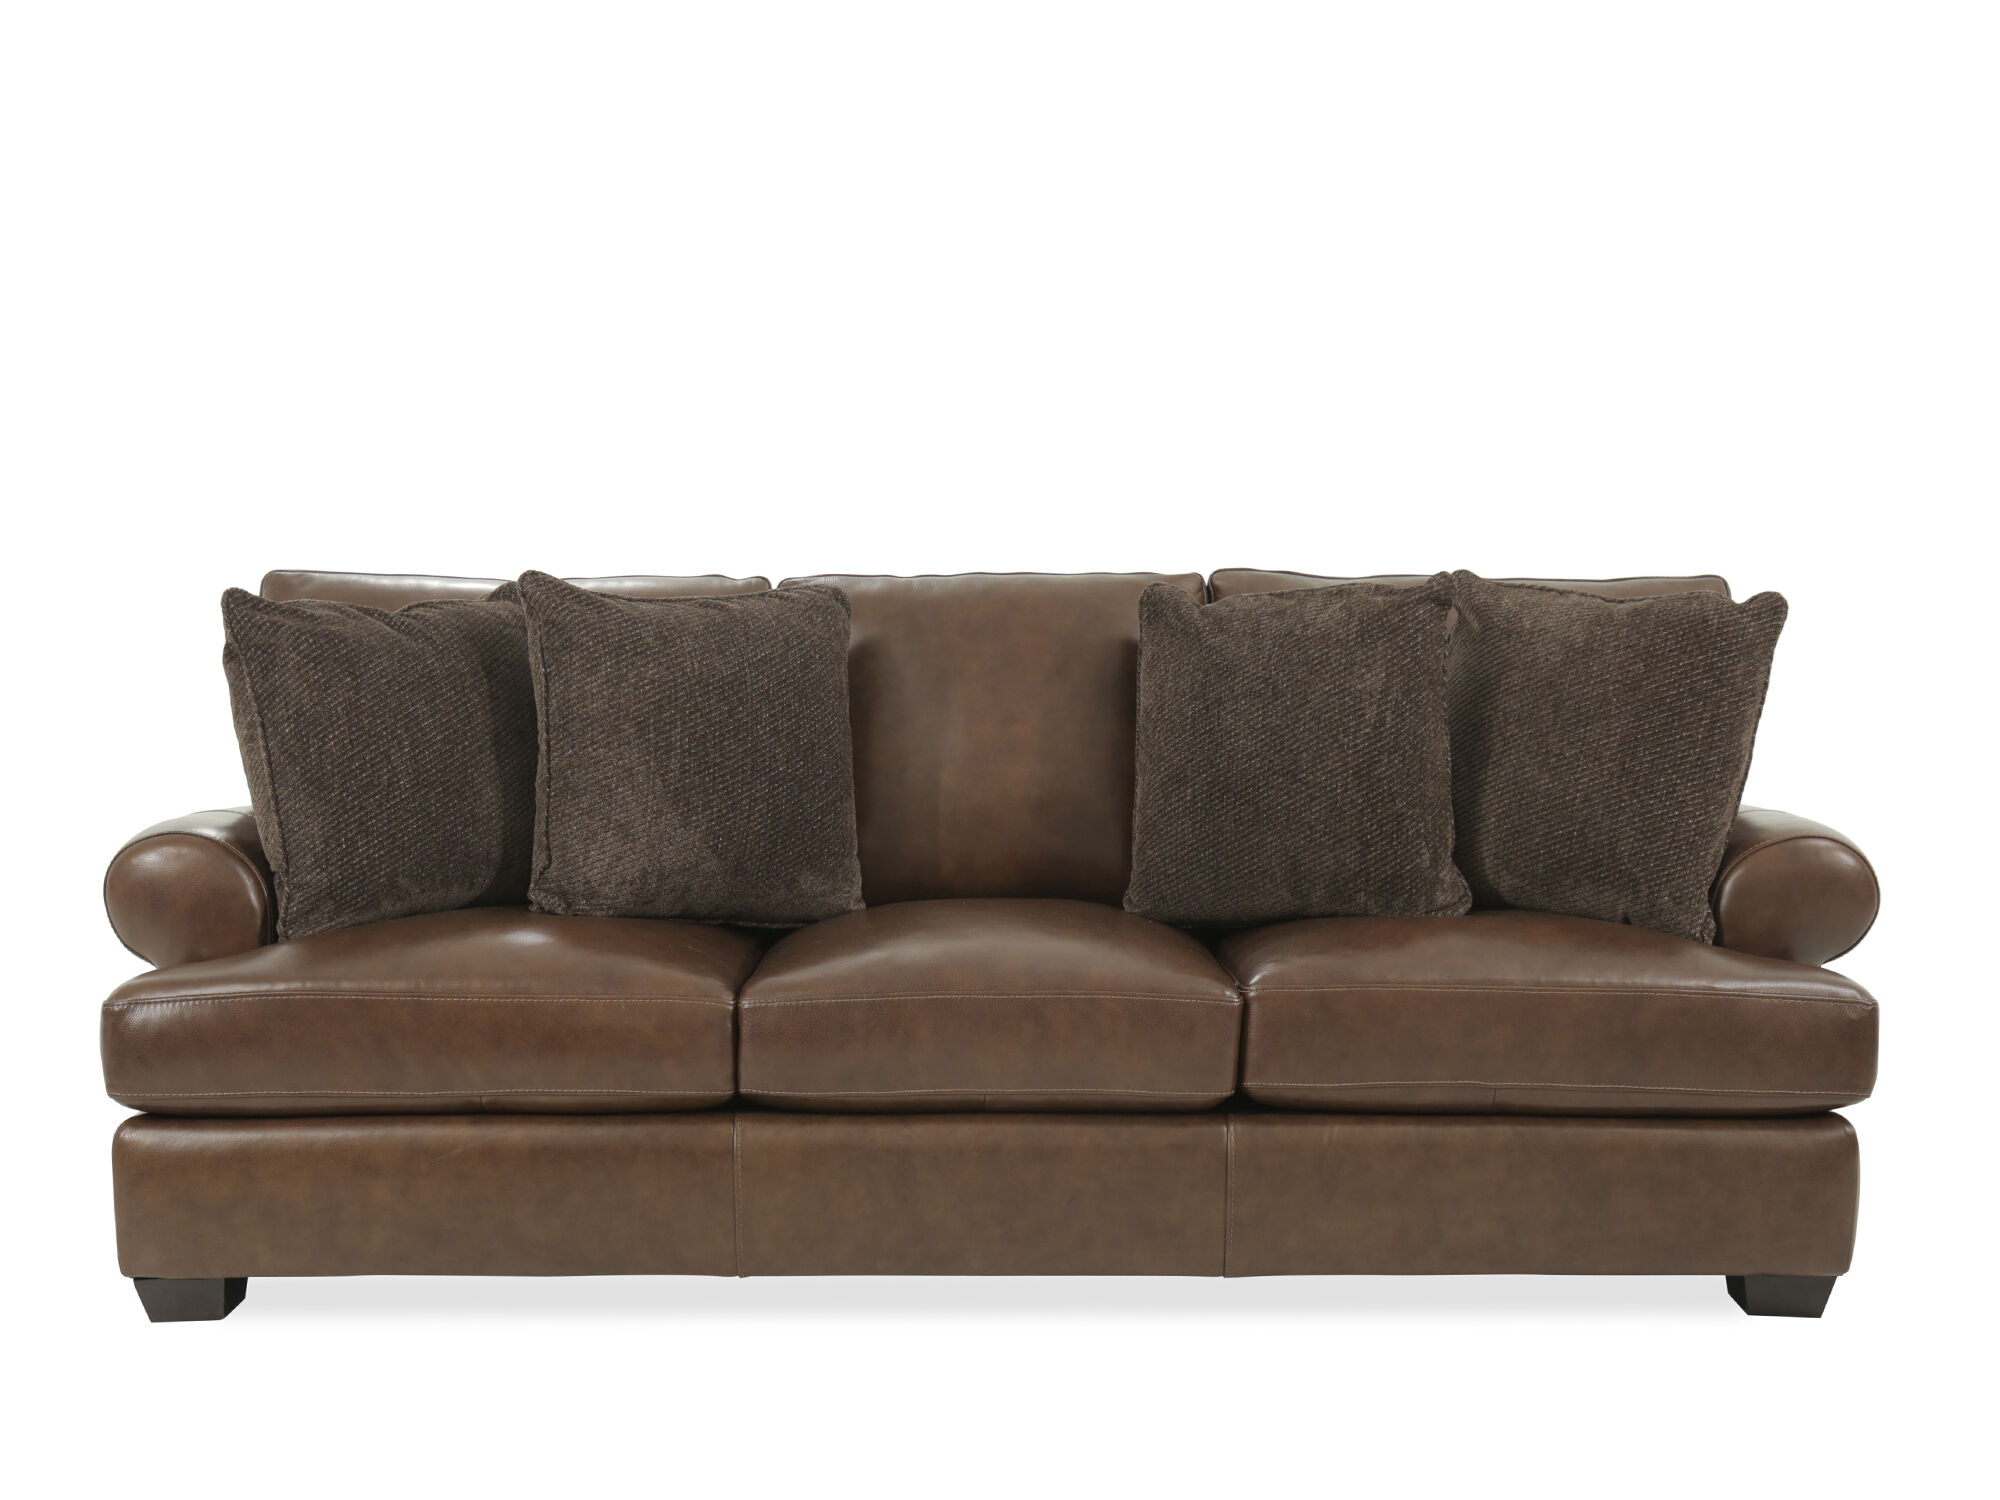 tyson sectional sofa patches for leather sofas bernhardt brown | mathis brothers furniture